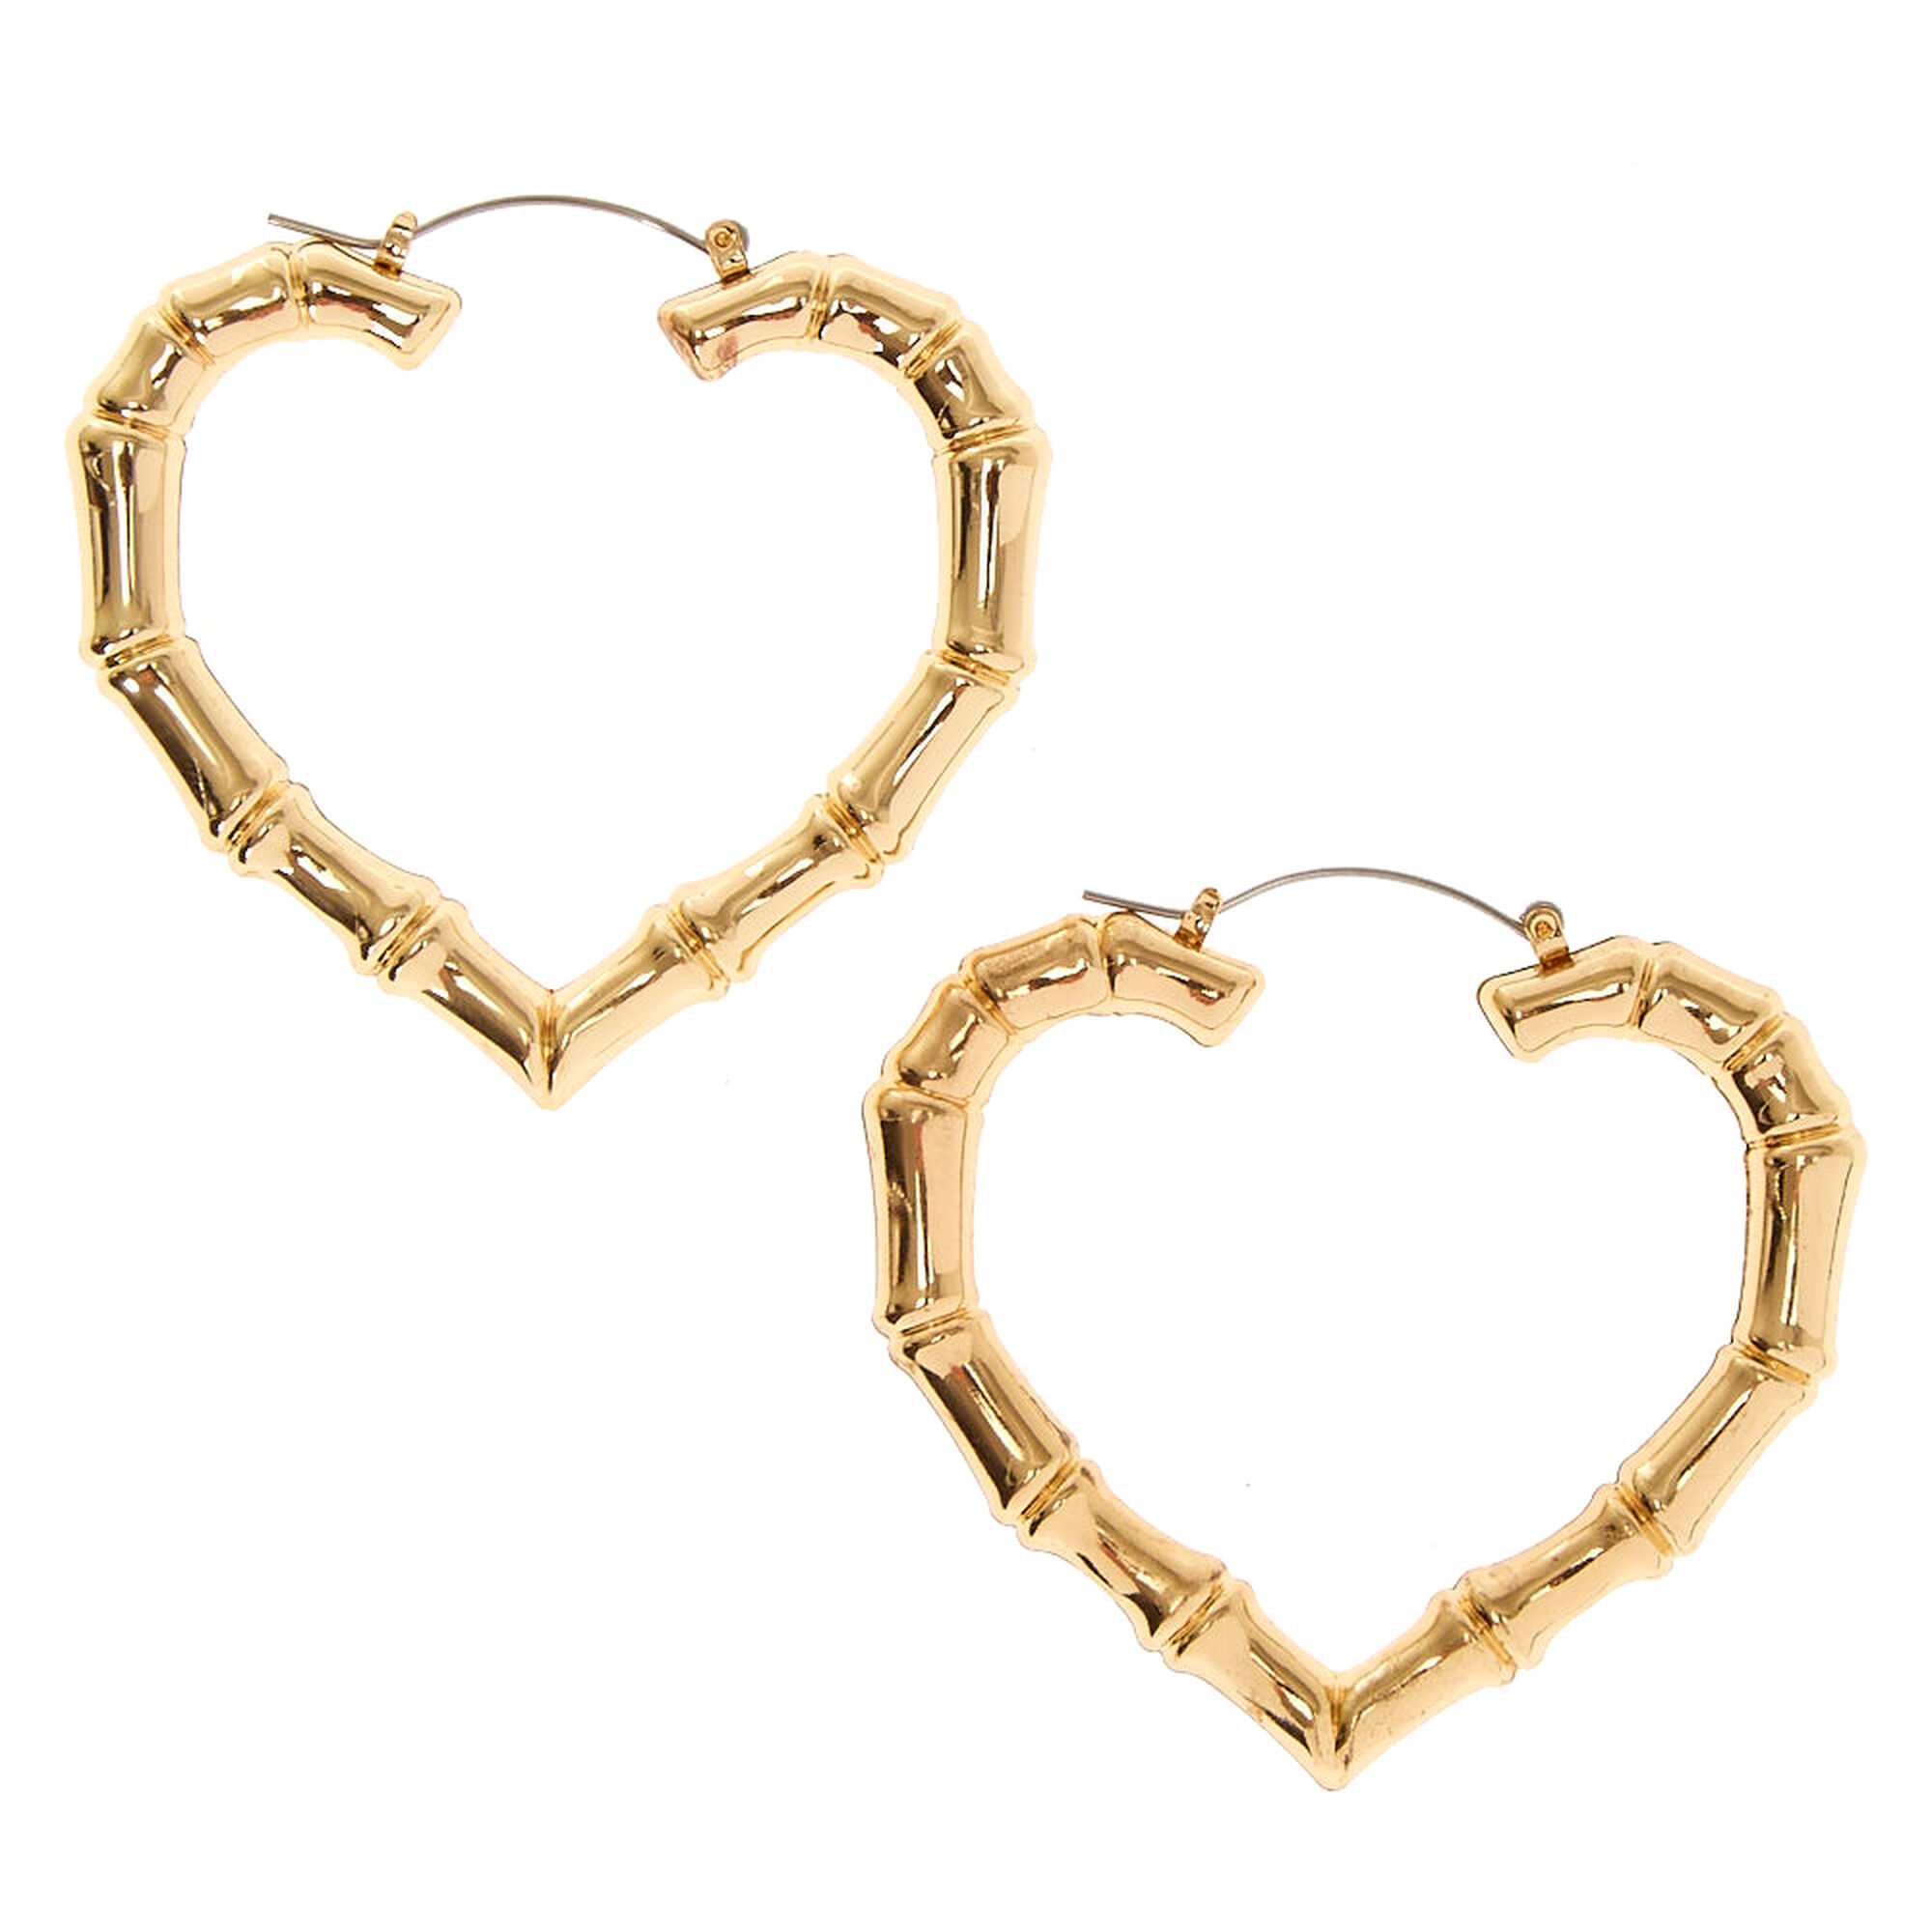 petite main earrings products pave diamonds with heart pdp women